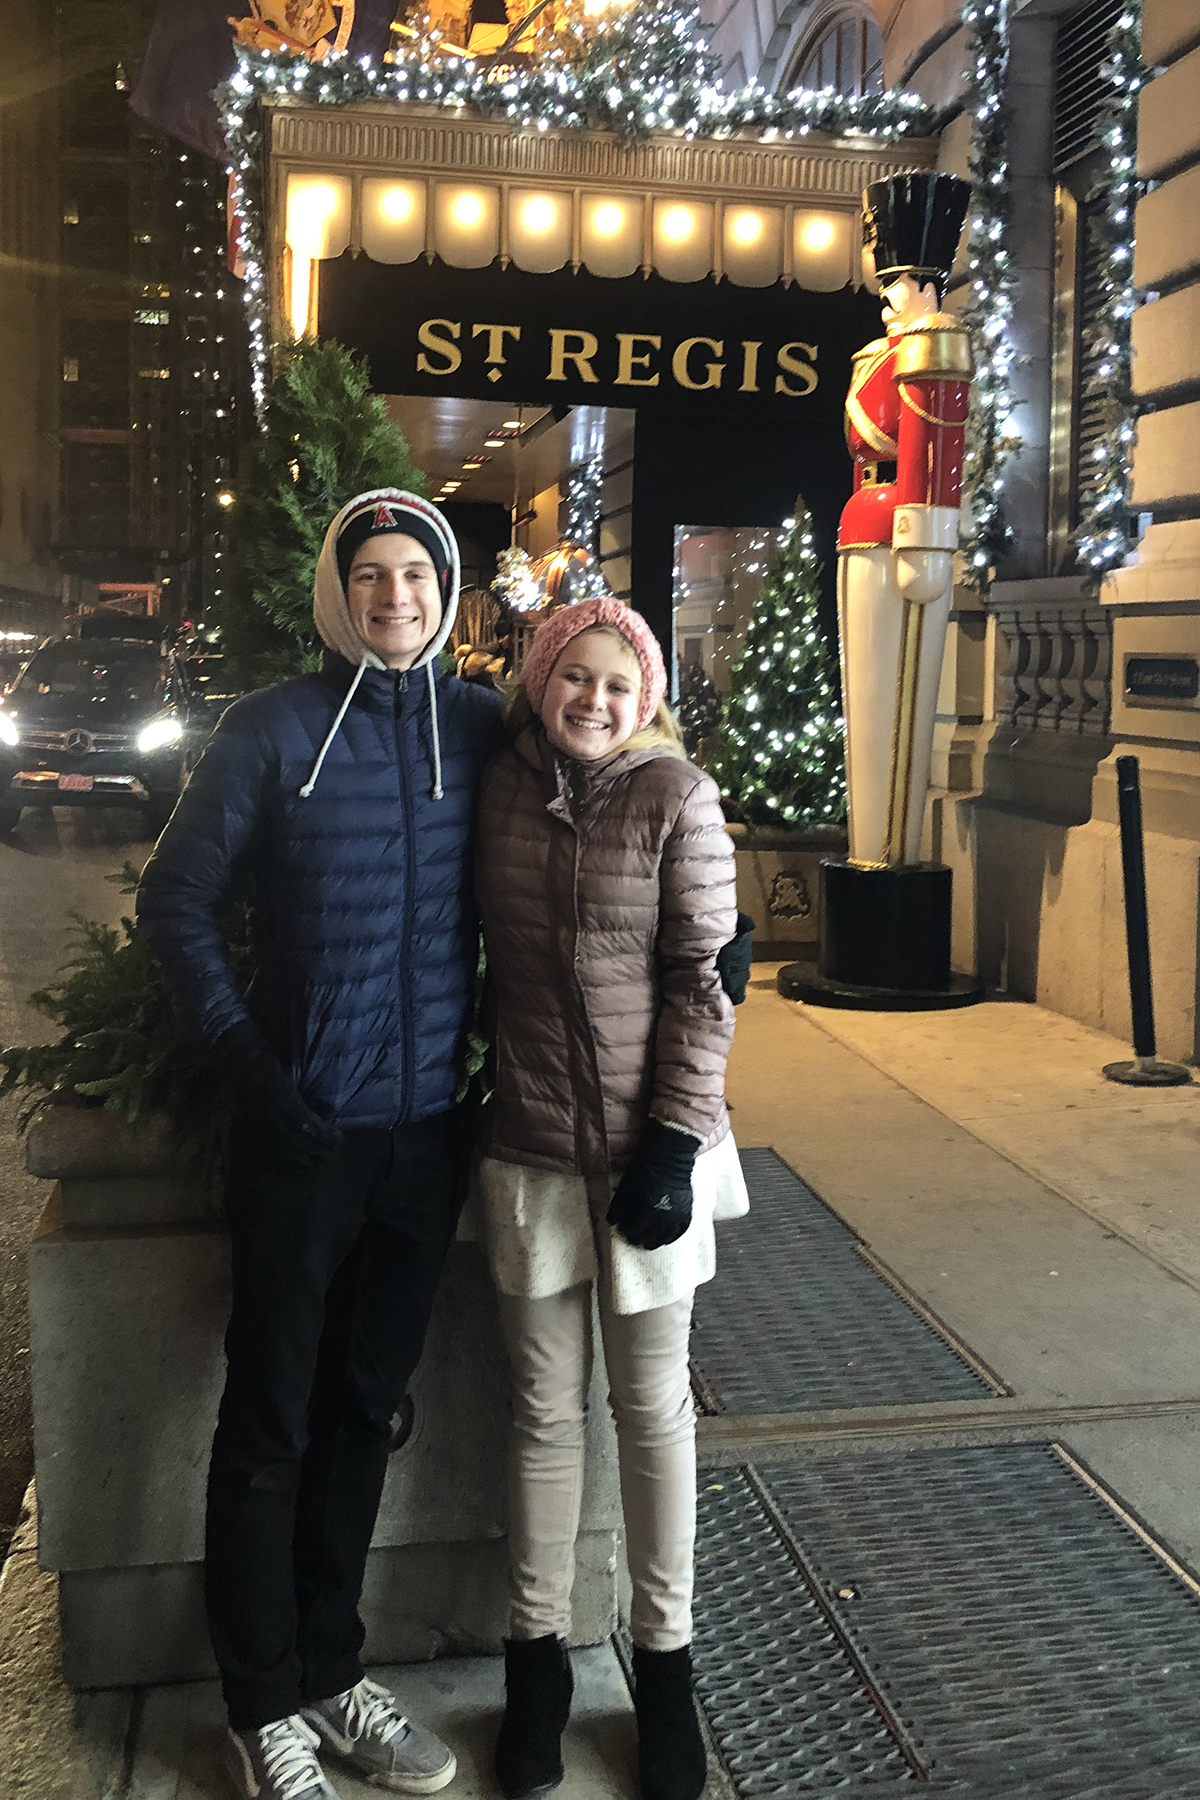 The st regis nyc at christmas